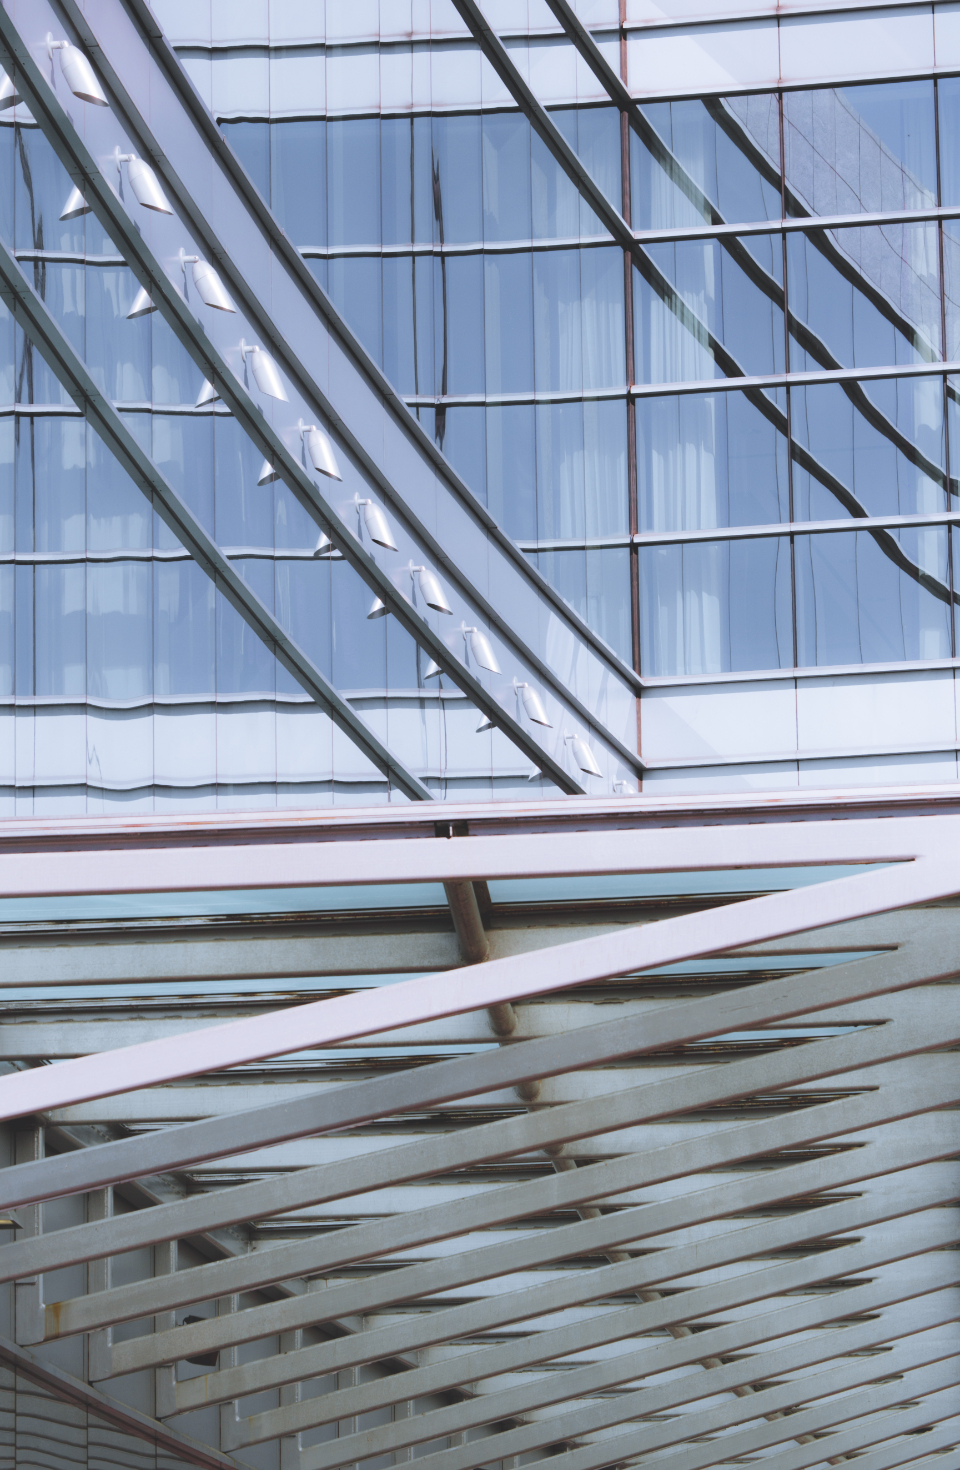 abstract background building modern perspective architecture metal roof steel sky ceiling beam glass design city urban business